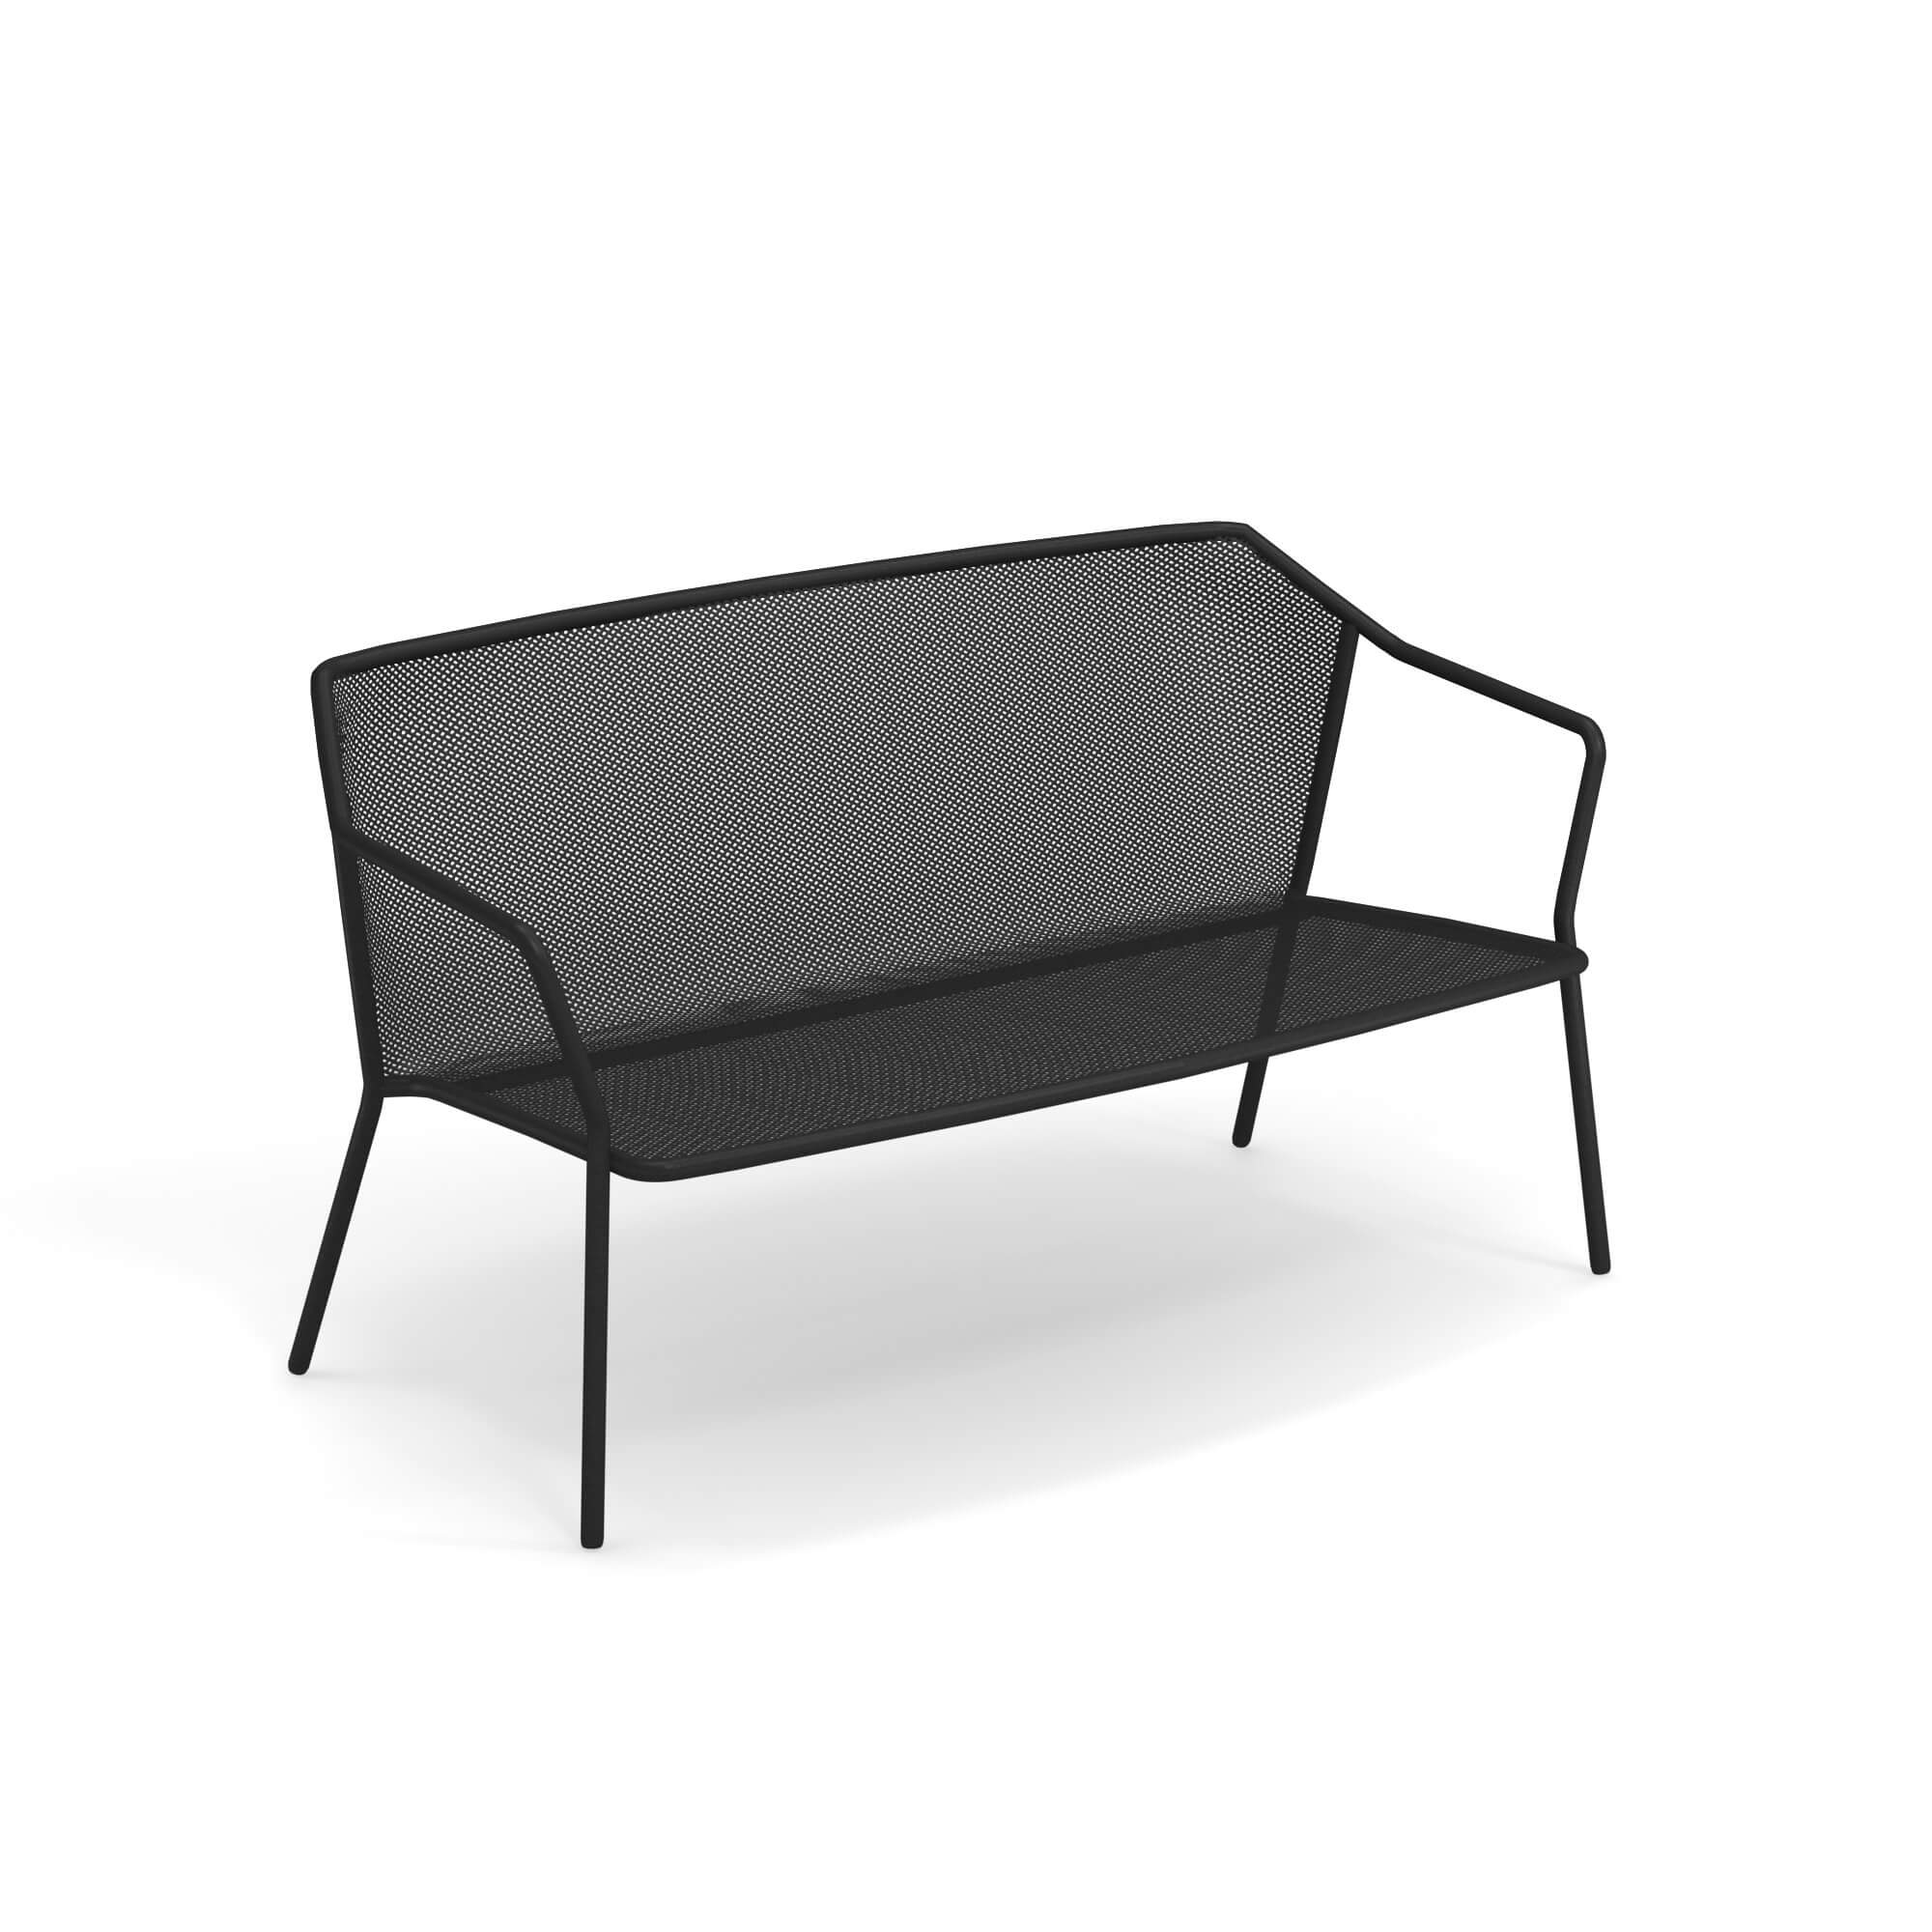 Image result for black and white couch outside